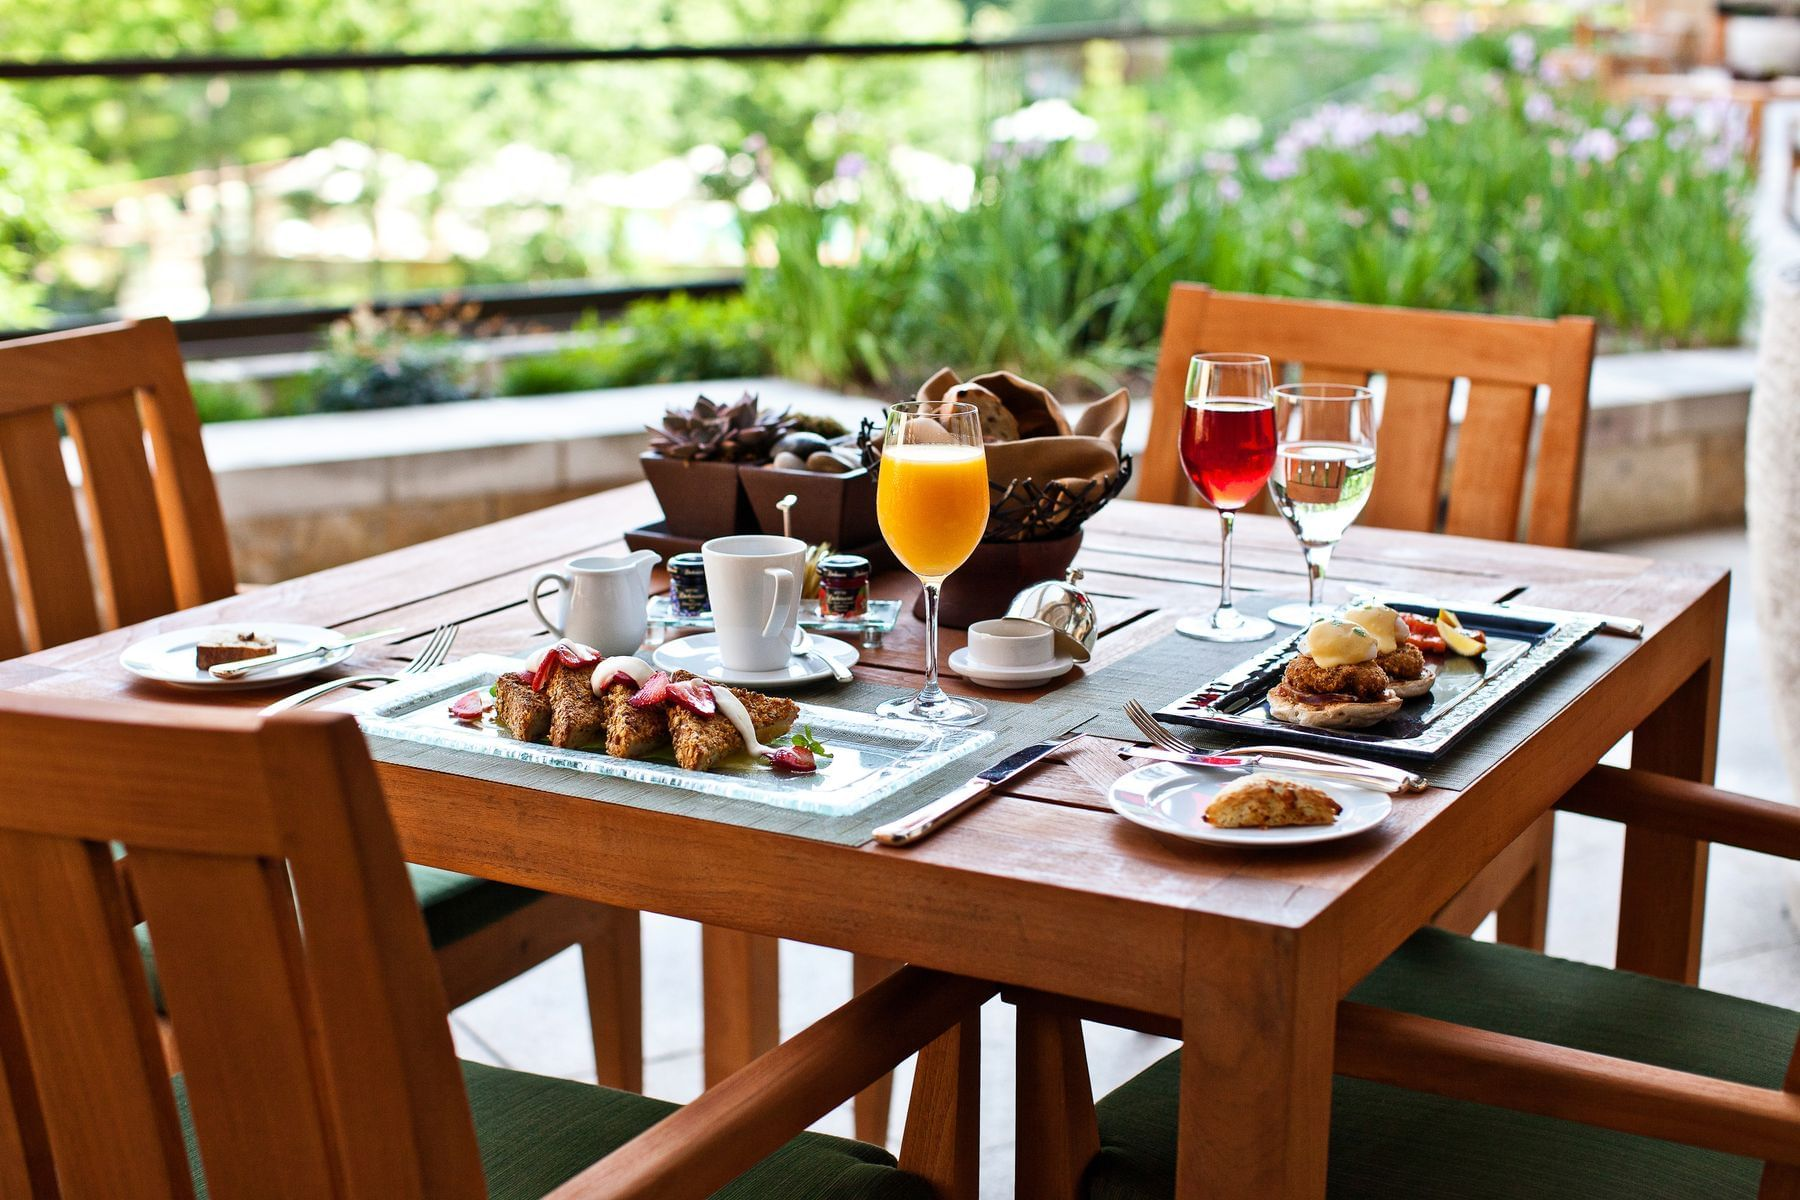 table with breakfast dishes and mimosas